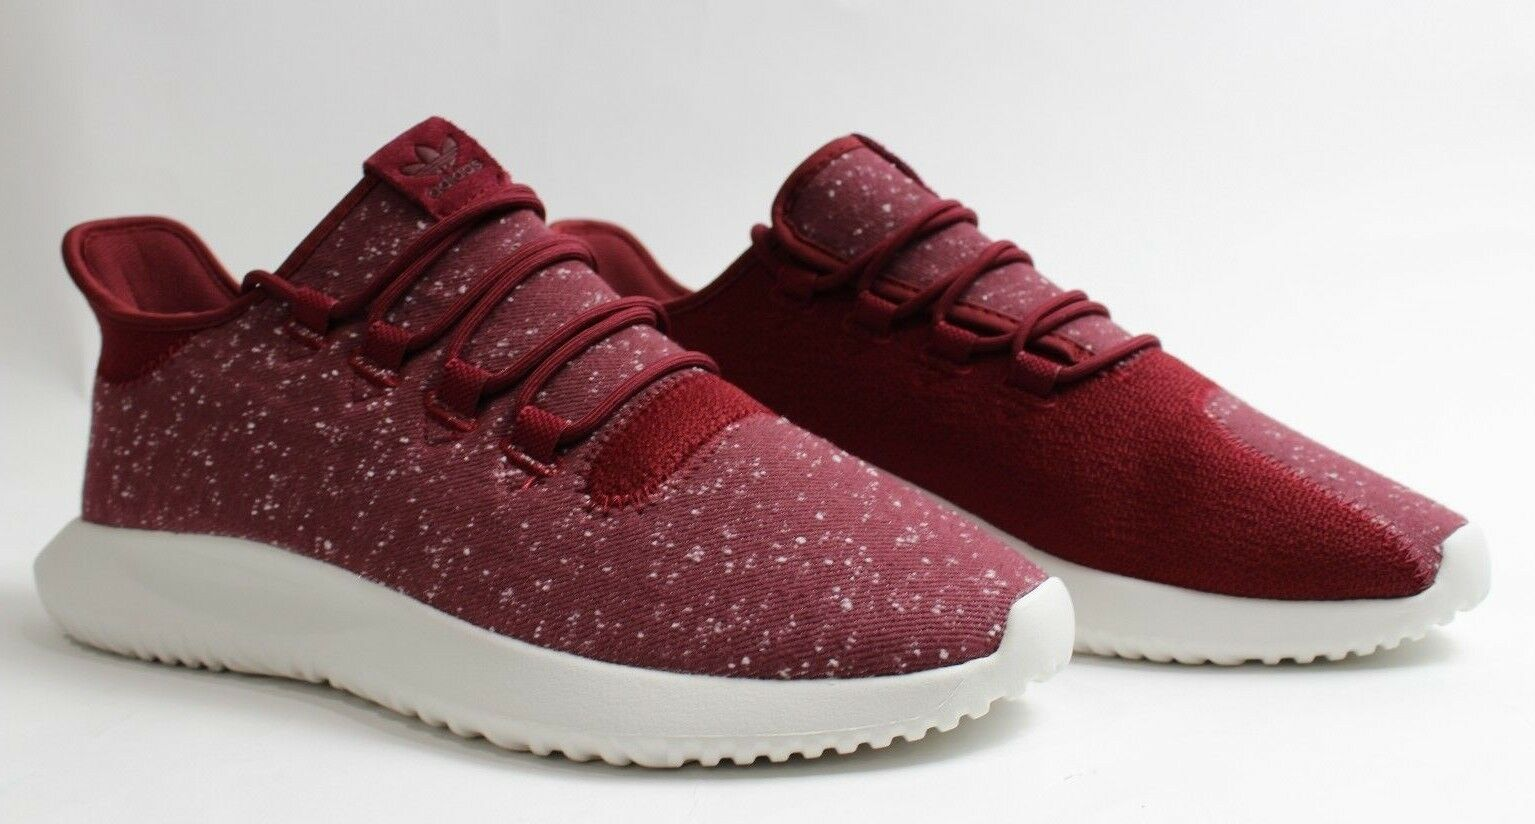 Adidas Originals Tubular Running Shadow Collegiate Burgundy White Running Tubular Shoes BY3571 aec7fb